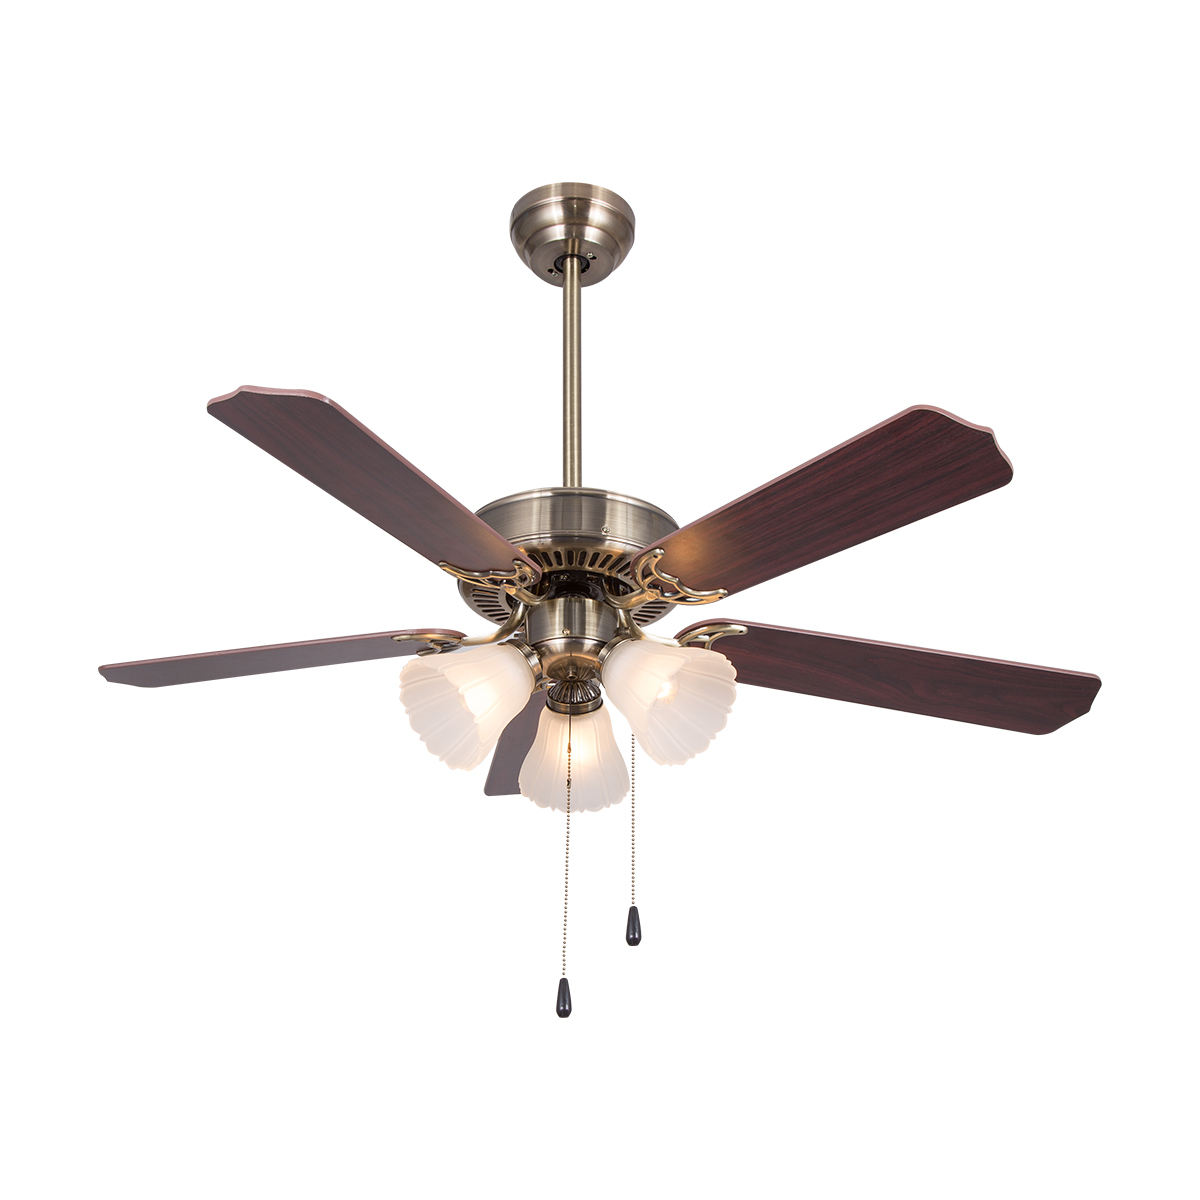 Image of: China Ceiling Fan India China Ceiling Fan India Manufacturers And Suppliers On Alibaba Com